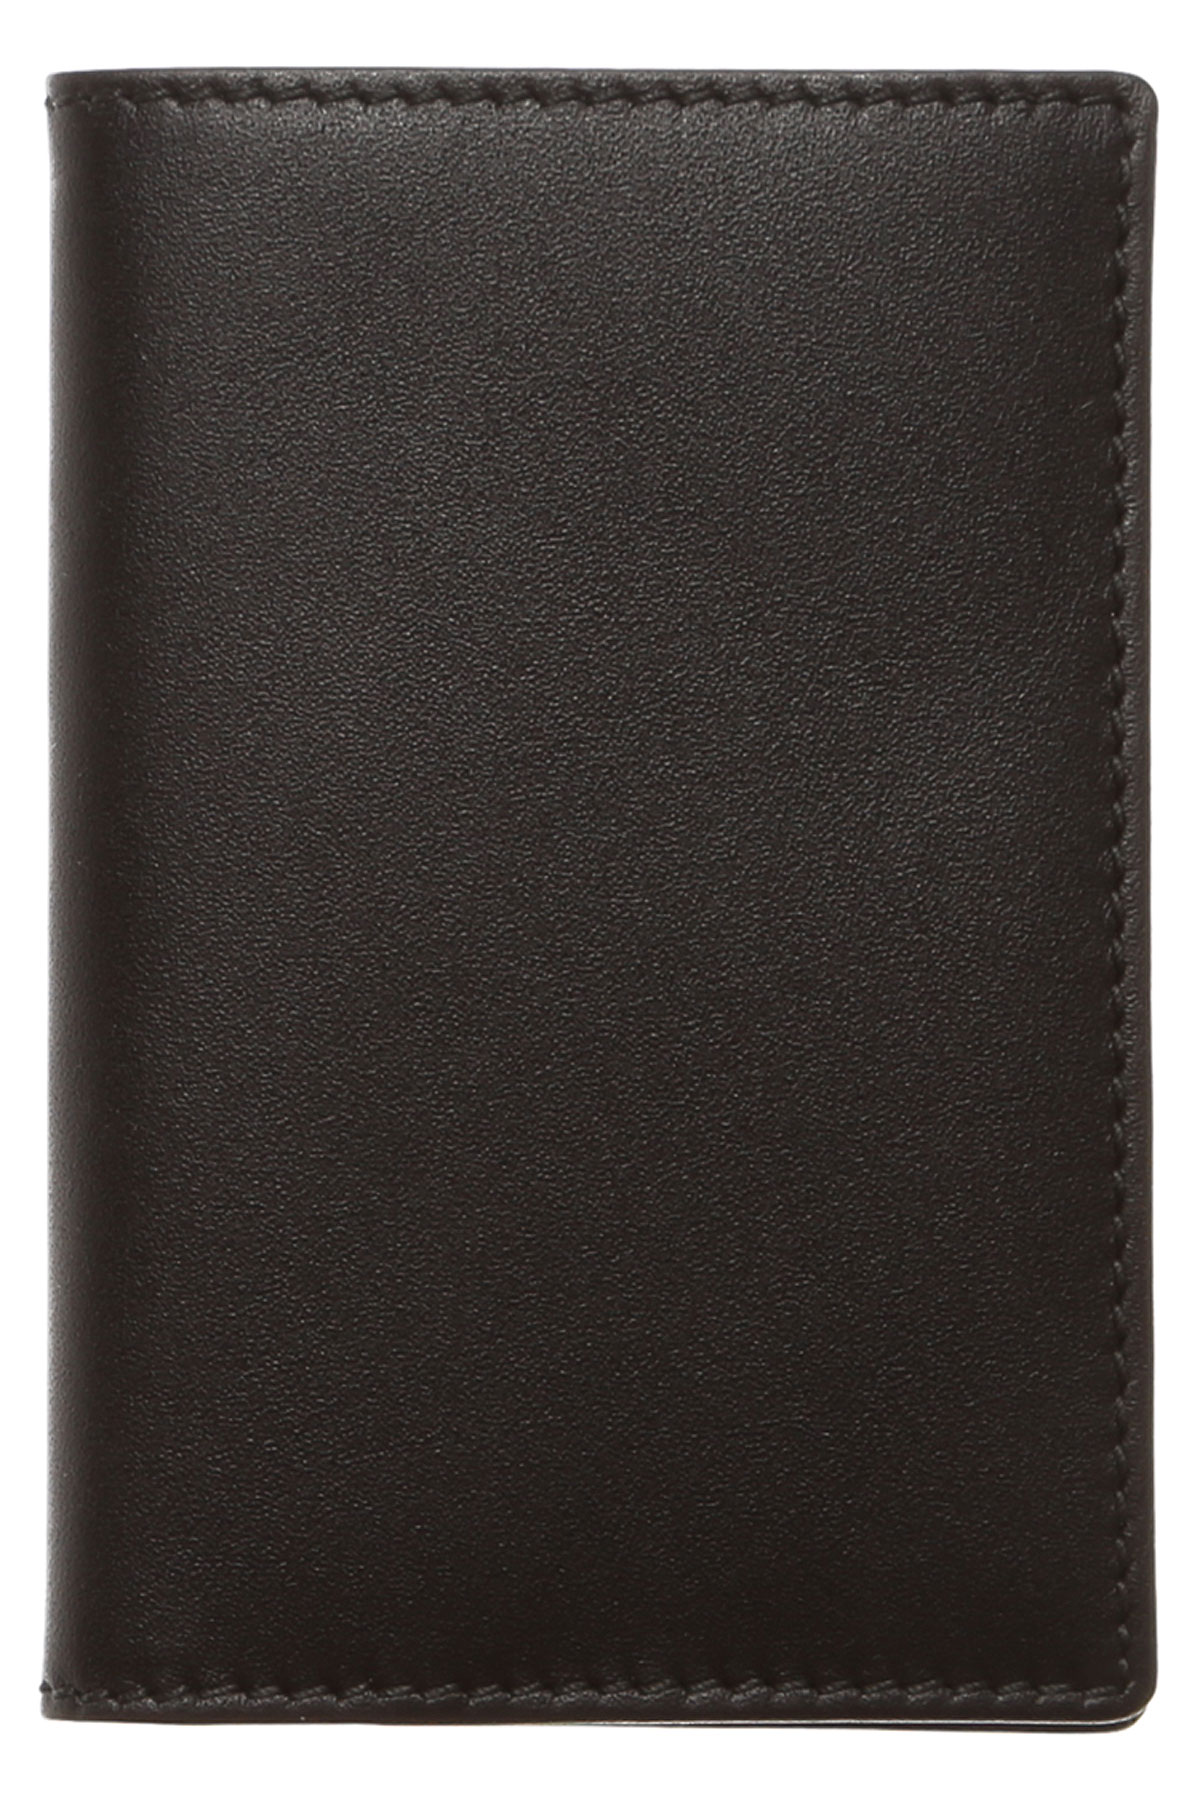 Comme des Garcons Card Holder for Women On Sale, Black, Leather, 2019, one size One size